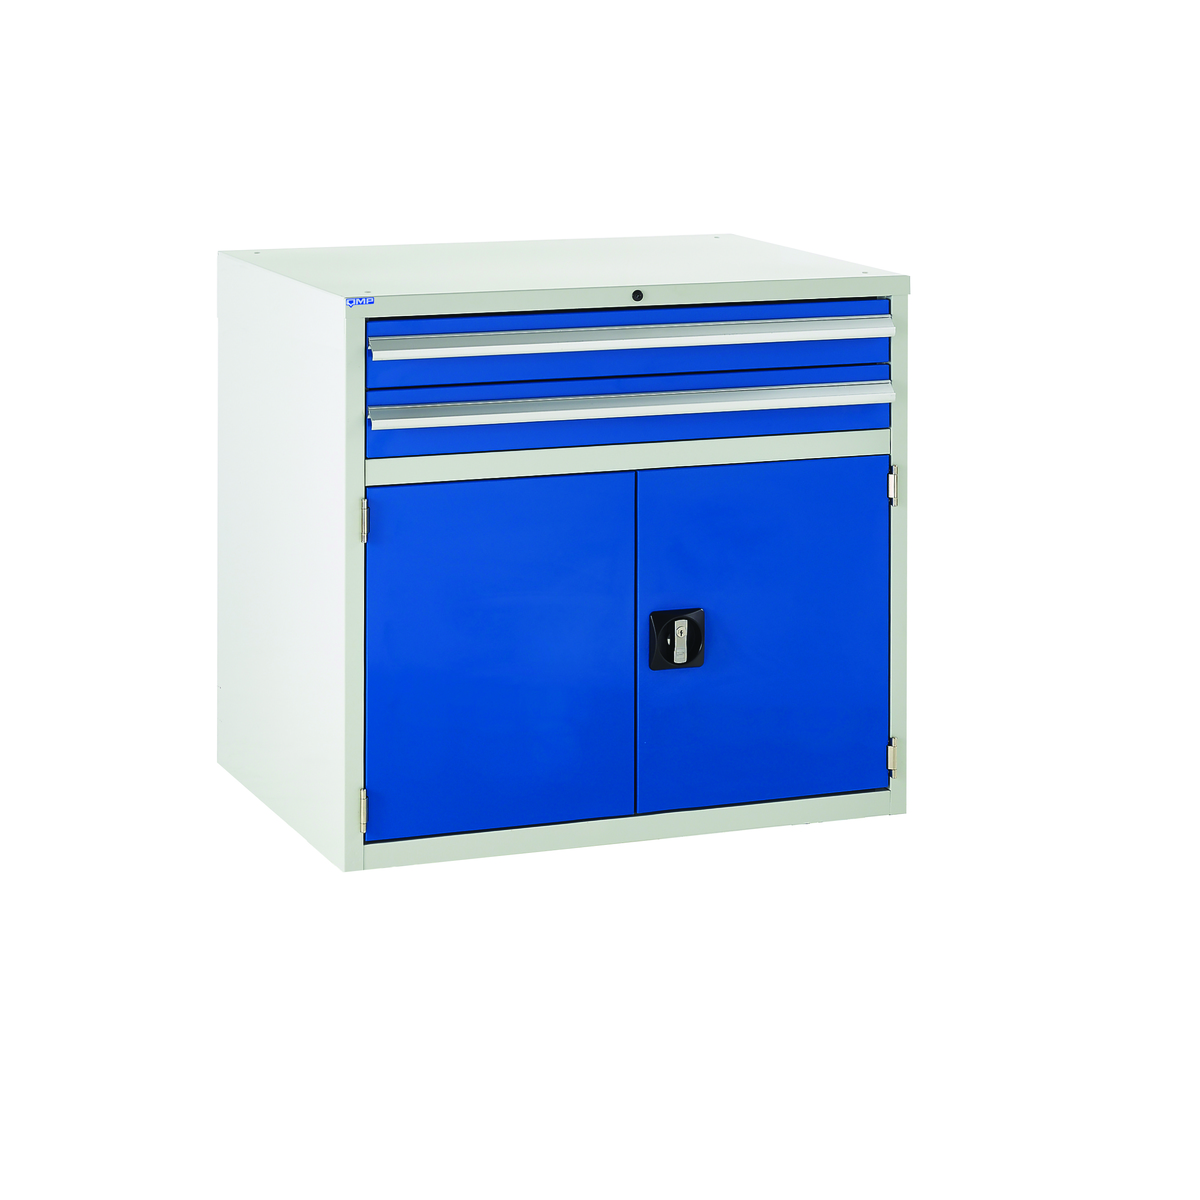 Tool cabinet benches-Heavy duty-EUROSLIDE WORKBENCHES- Perfect for the workplace  image